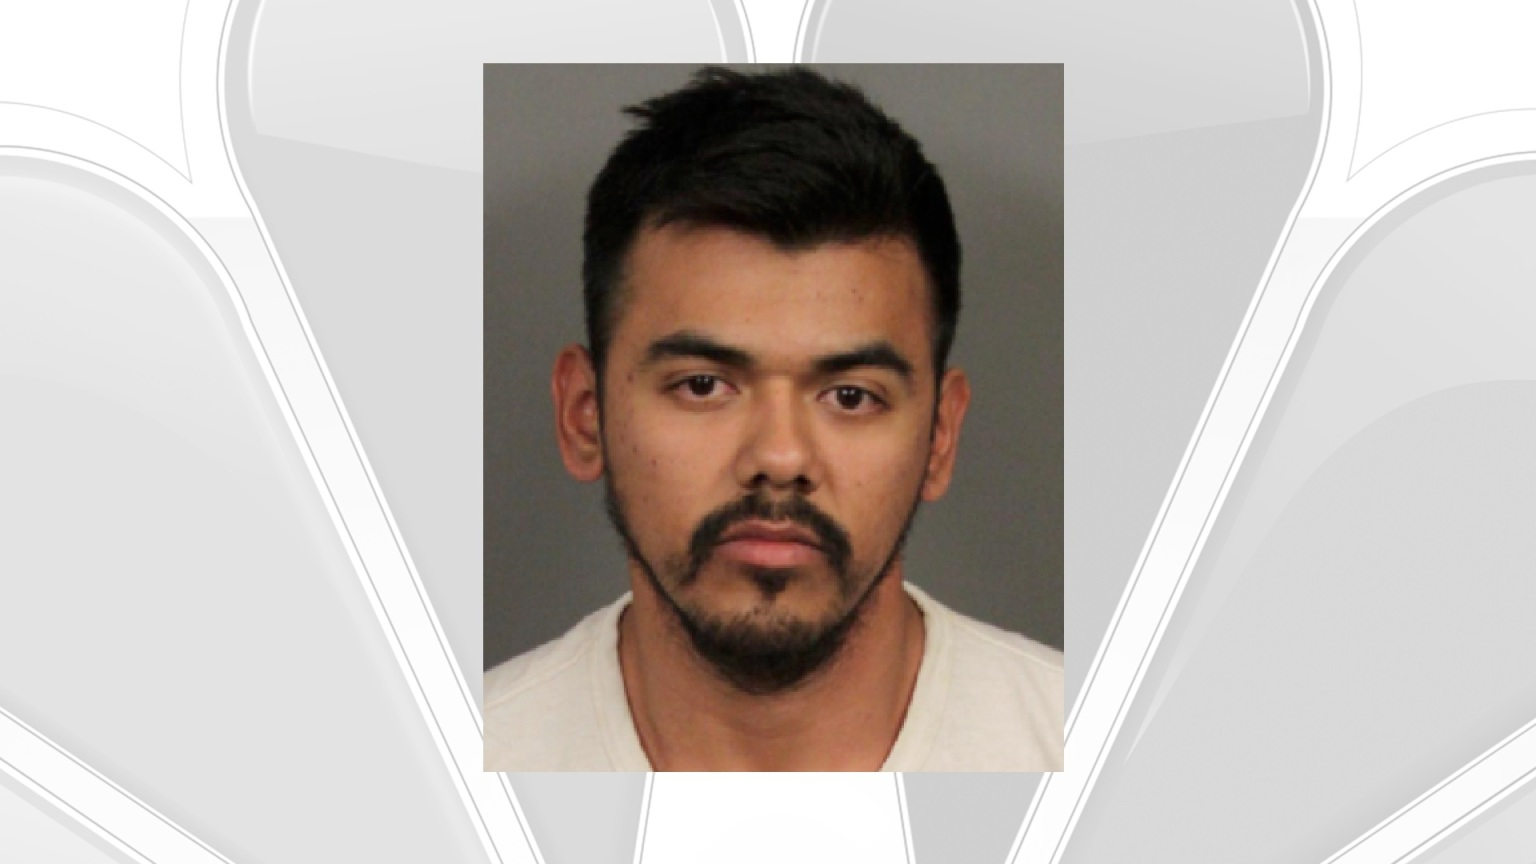 Man Pleads Not Guilty To Having Inappropriate Relationship With 15-Year-Old